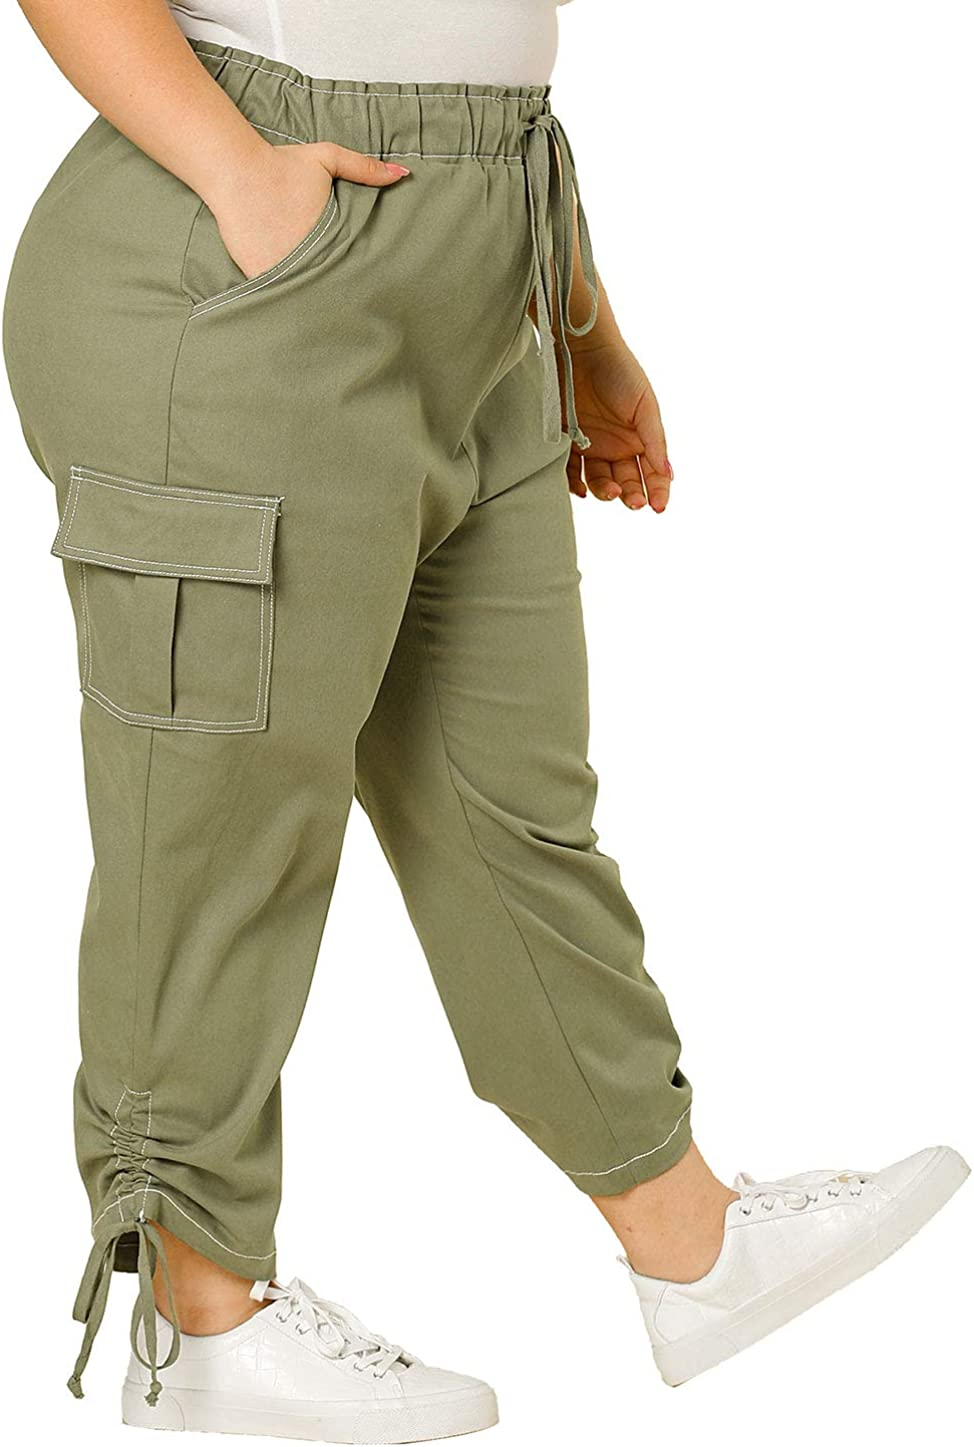 Agnes Orinda Women S Plus Size Drawstring Elastic Waist Cargo Pants With Pockets At Amazon Women S Clothing Store